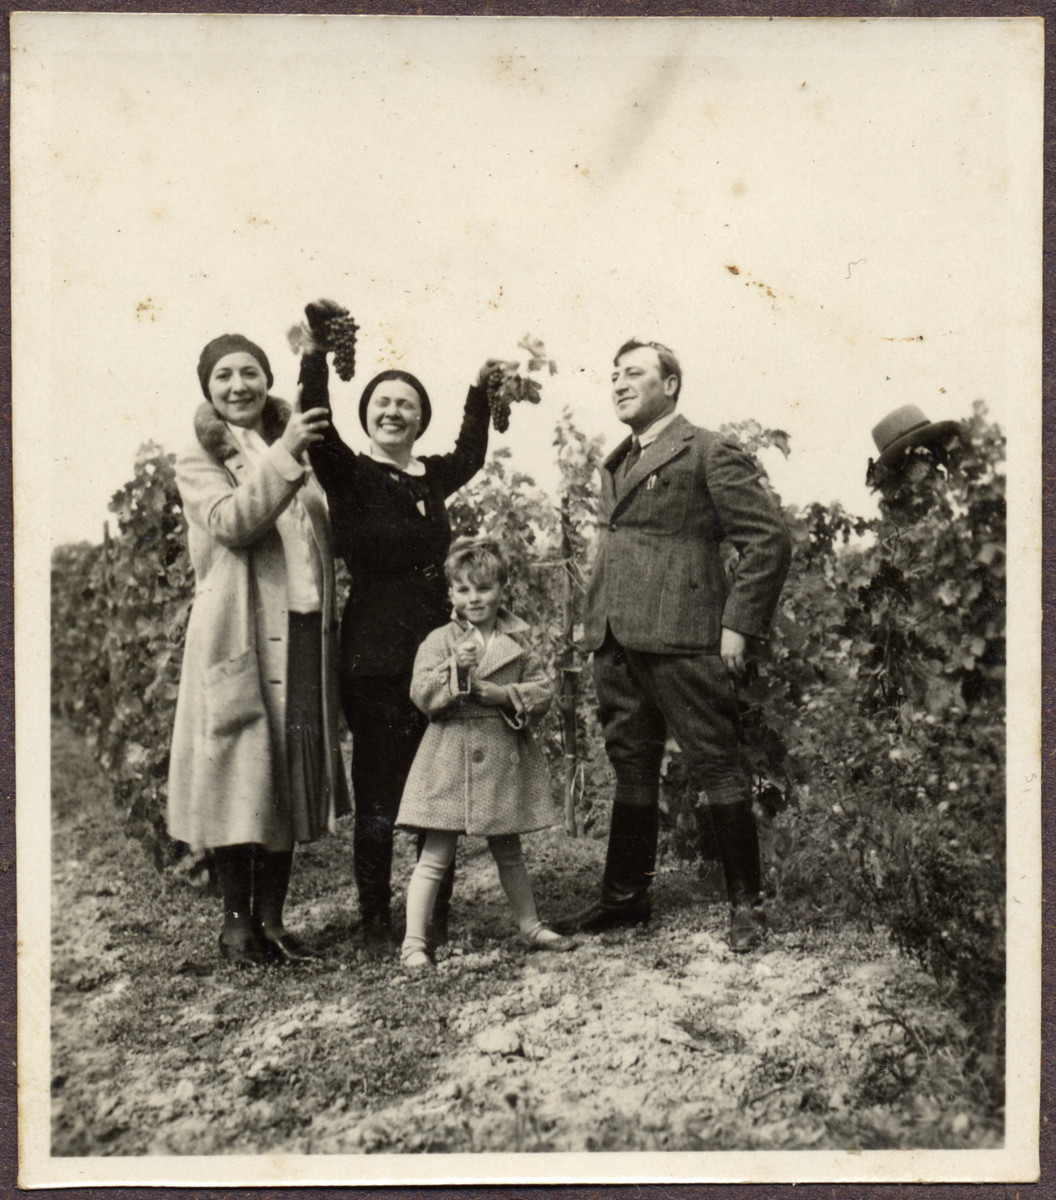 Greta Engel shows off their grape harvest on a farm, in Mileberg Castle, Austria.    On the right is her brother Paul Stoessler.  On the right is another sister.